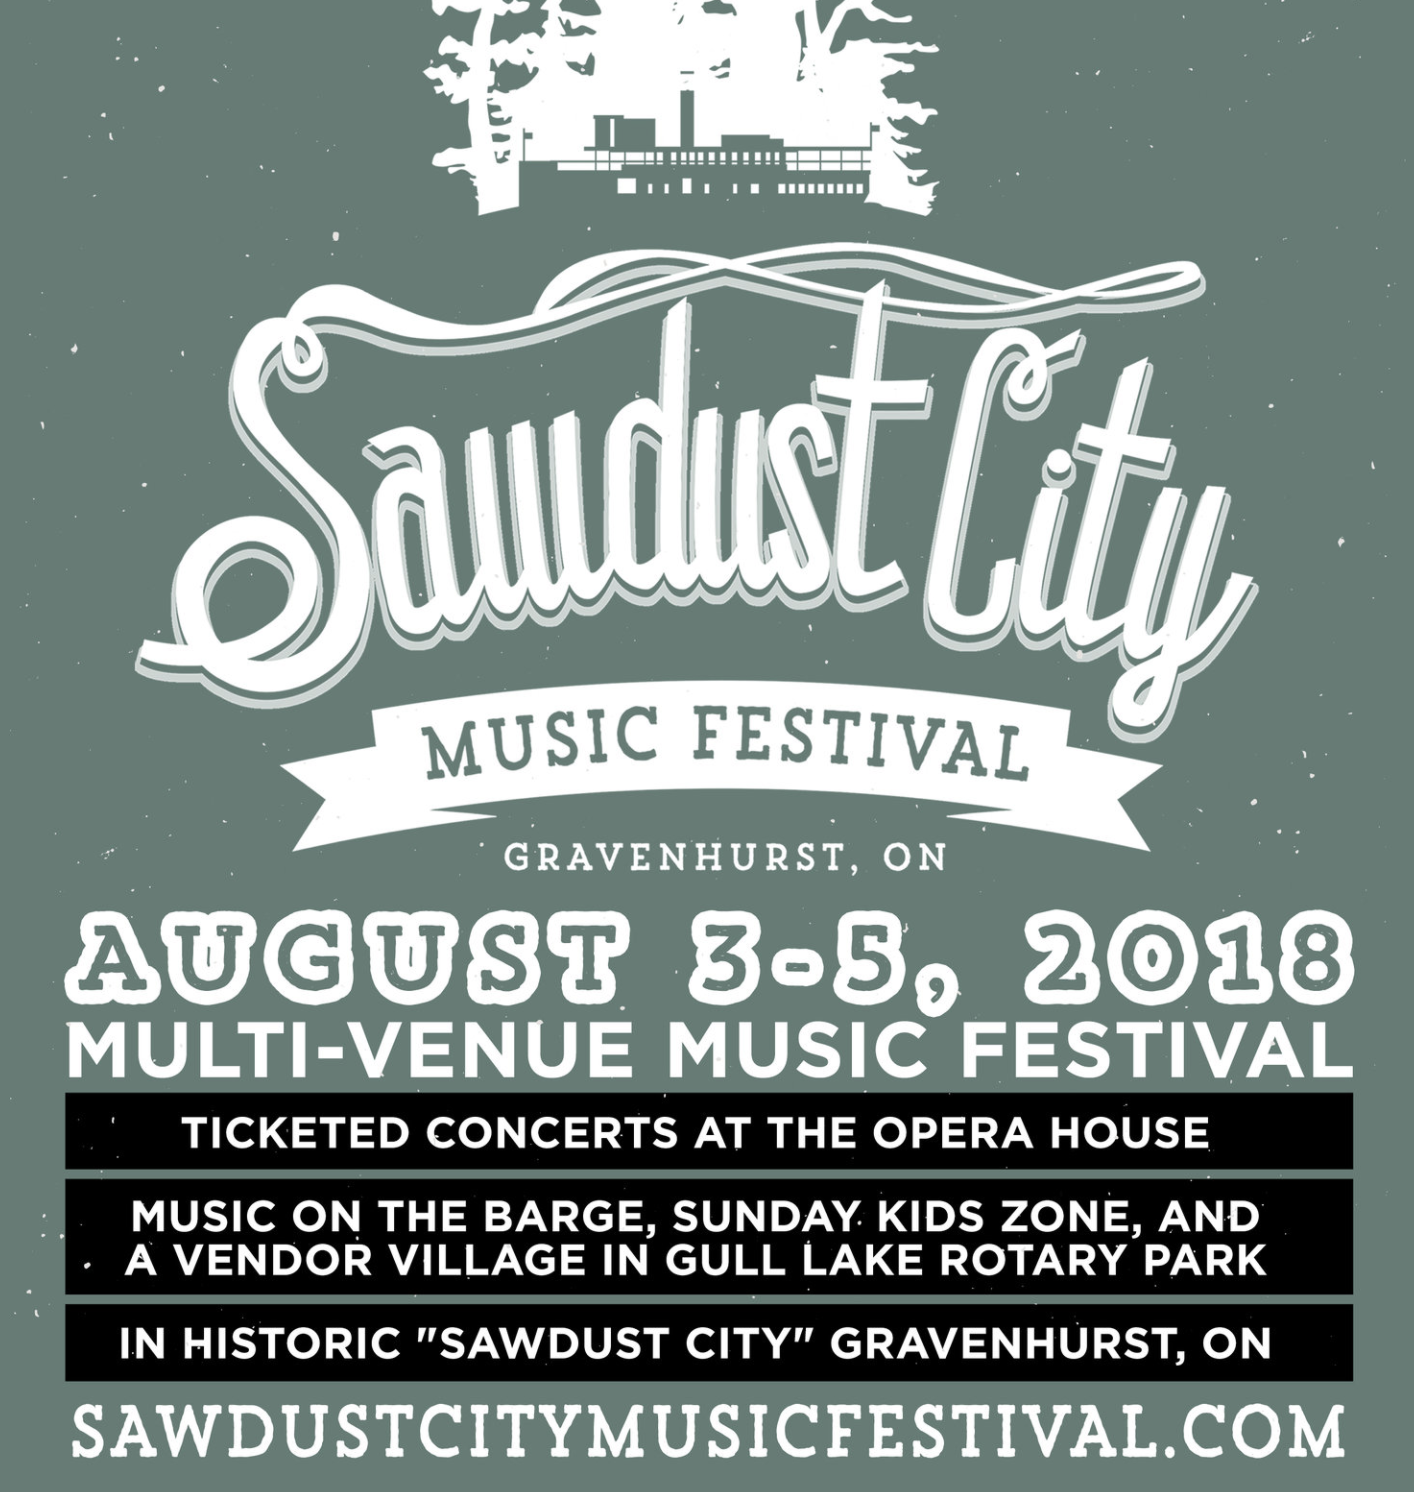 Sawdust City Music Festival